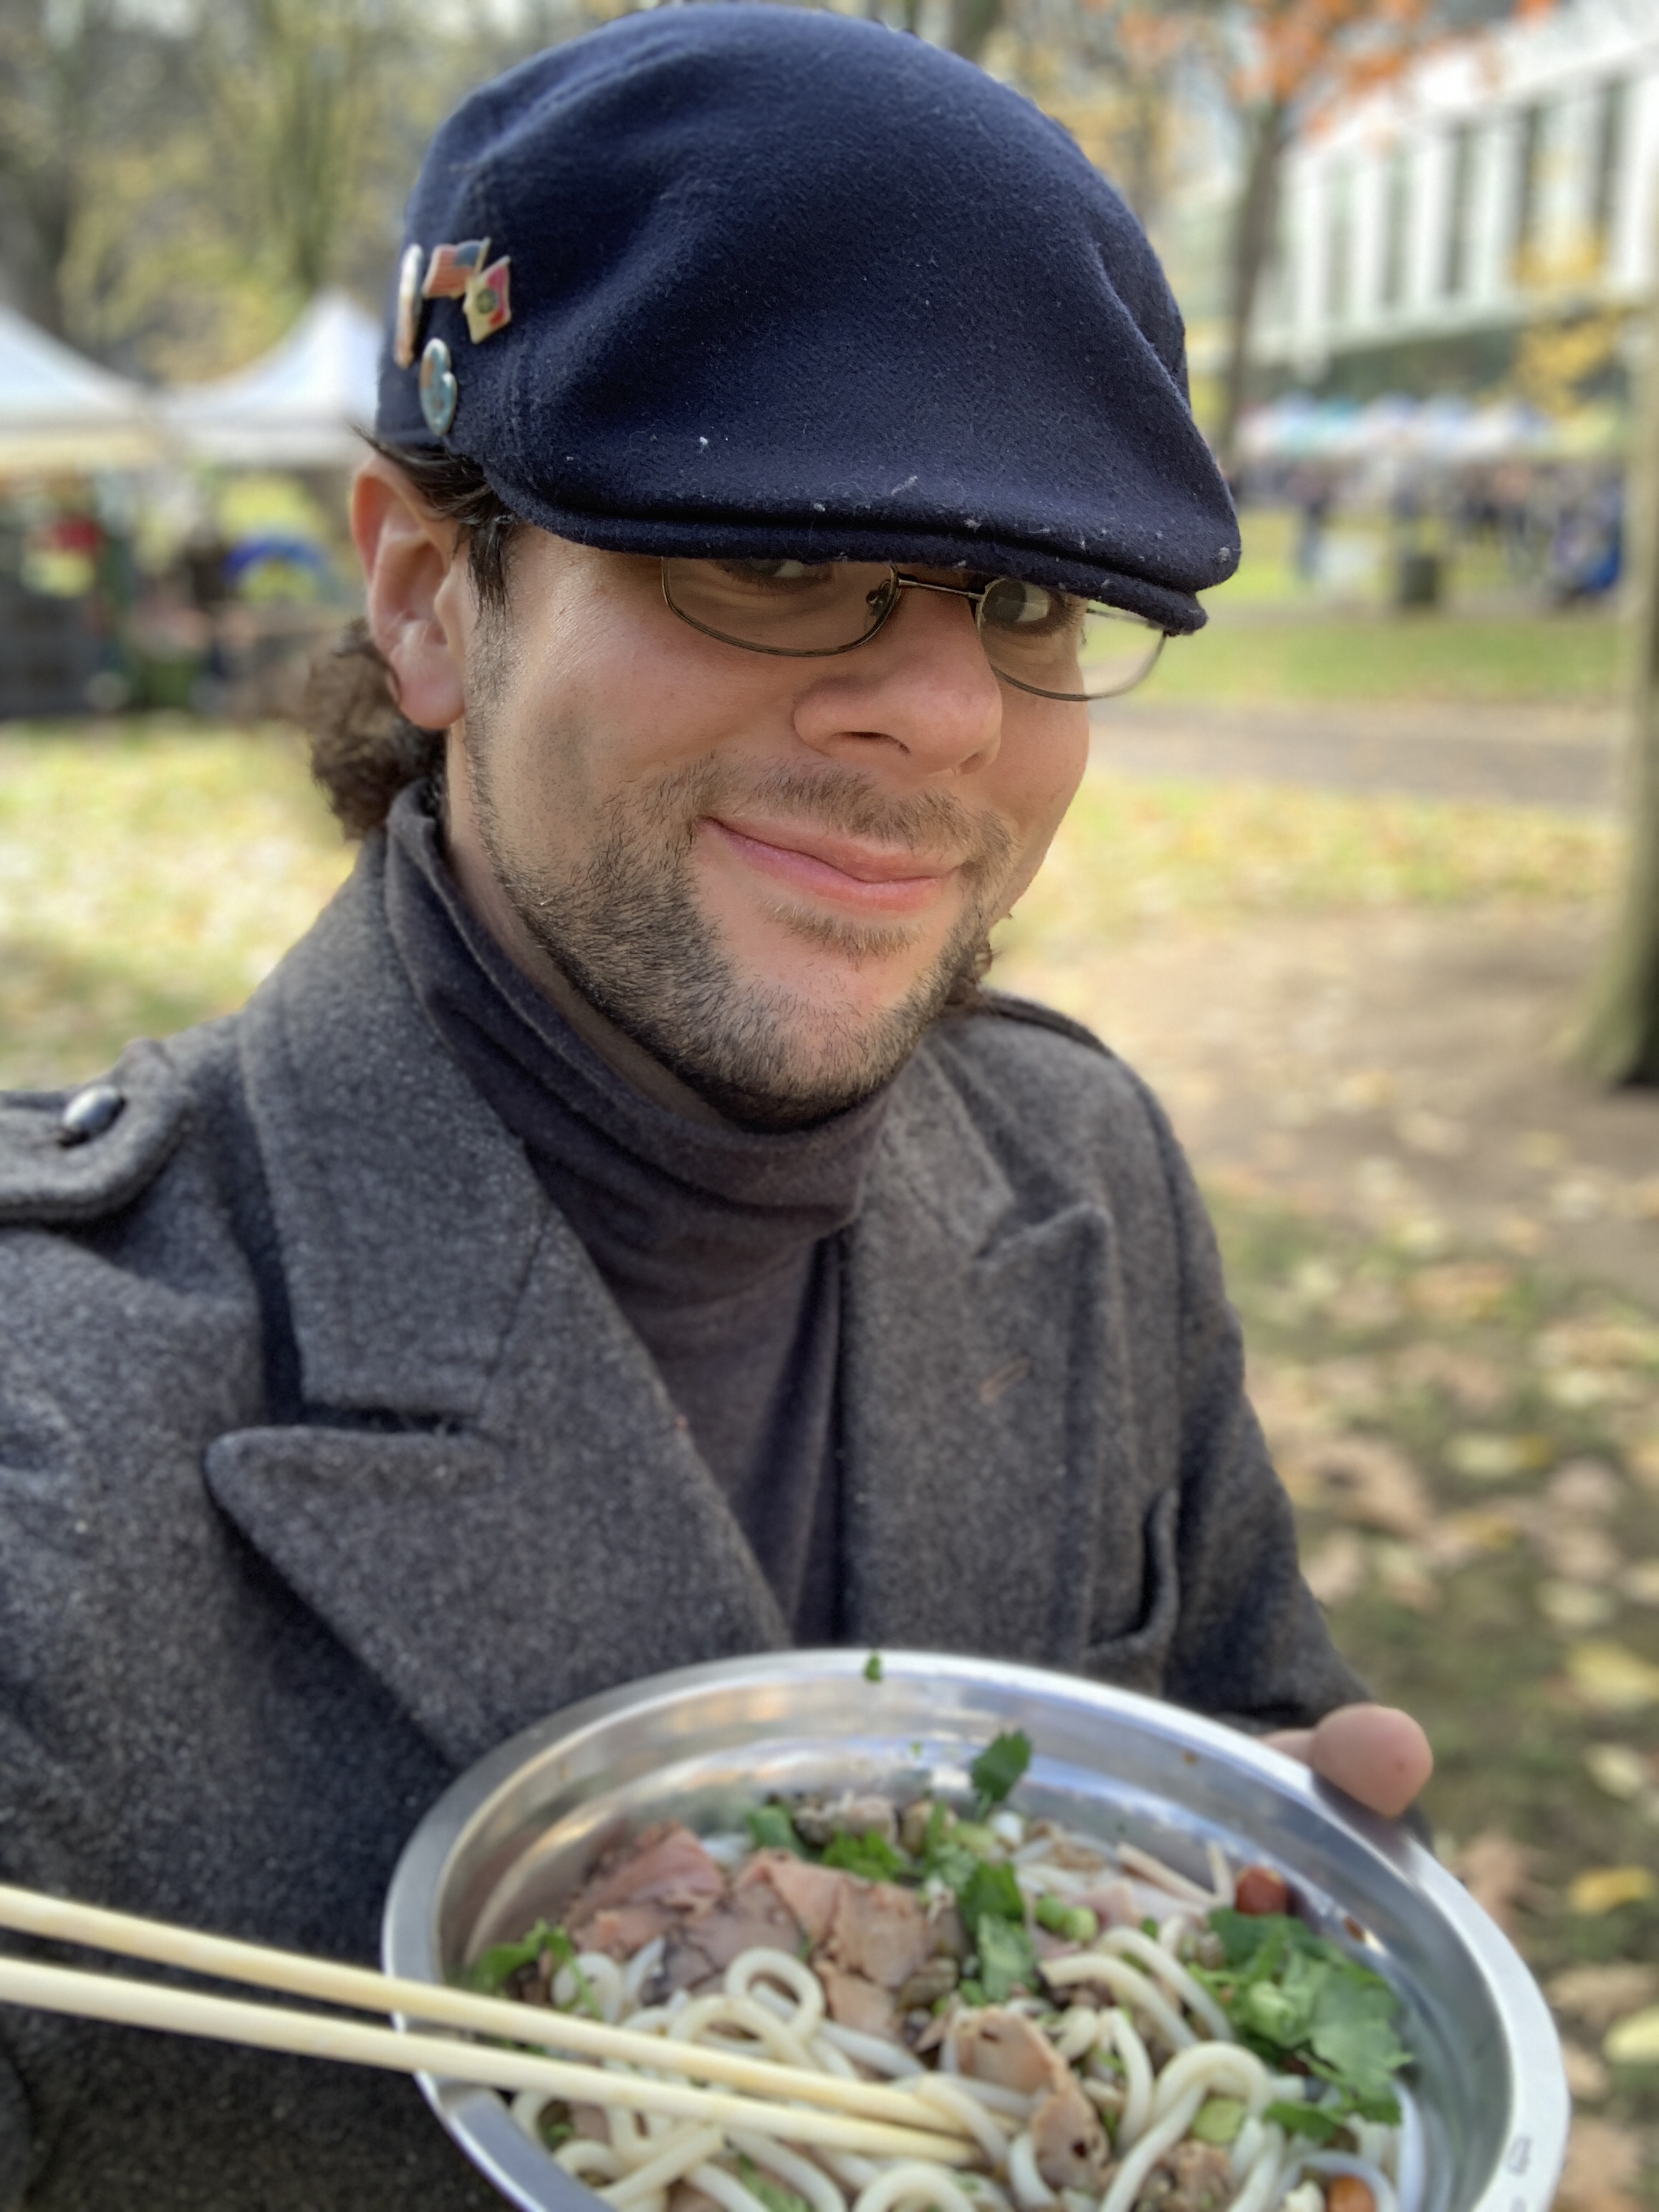 Selfie of the author in a gray wool coat and blue cap, holding up a bowl of noodle soup with chopsticks. It is outside  on a fall day.